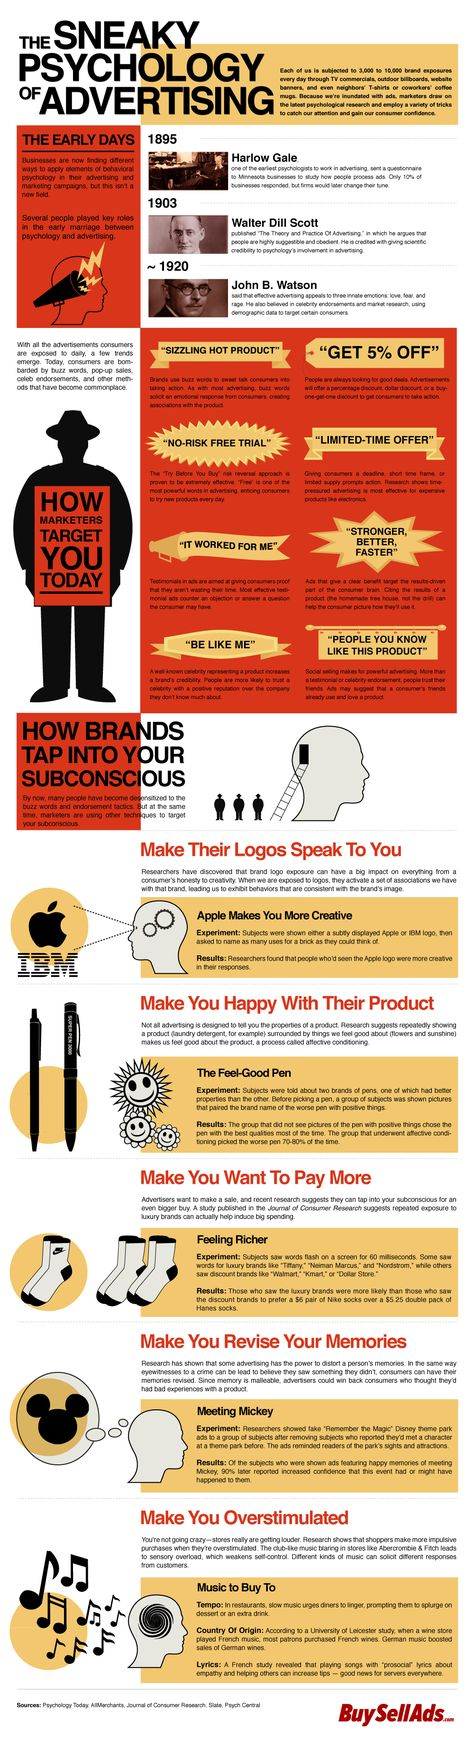 The sneaky psychology of advertising - infographic